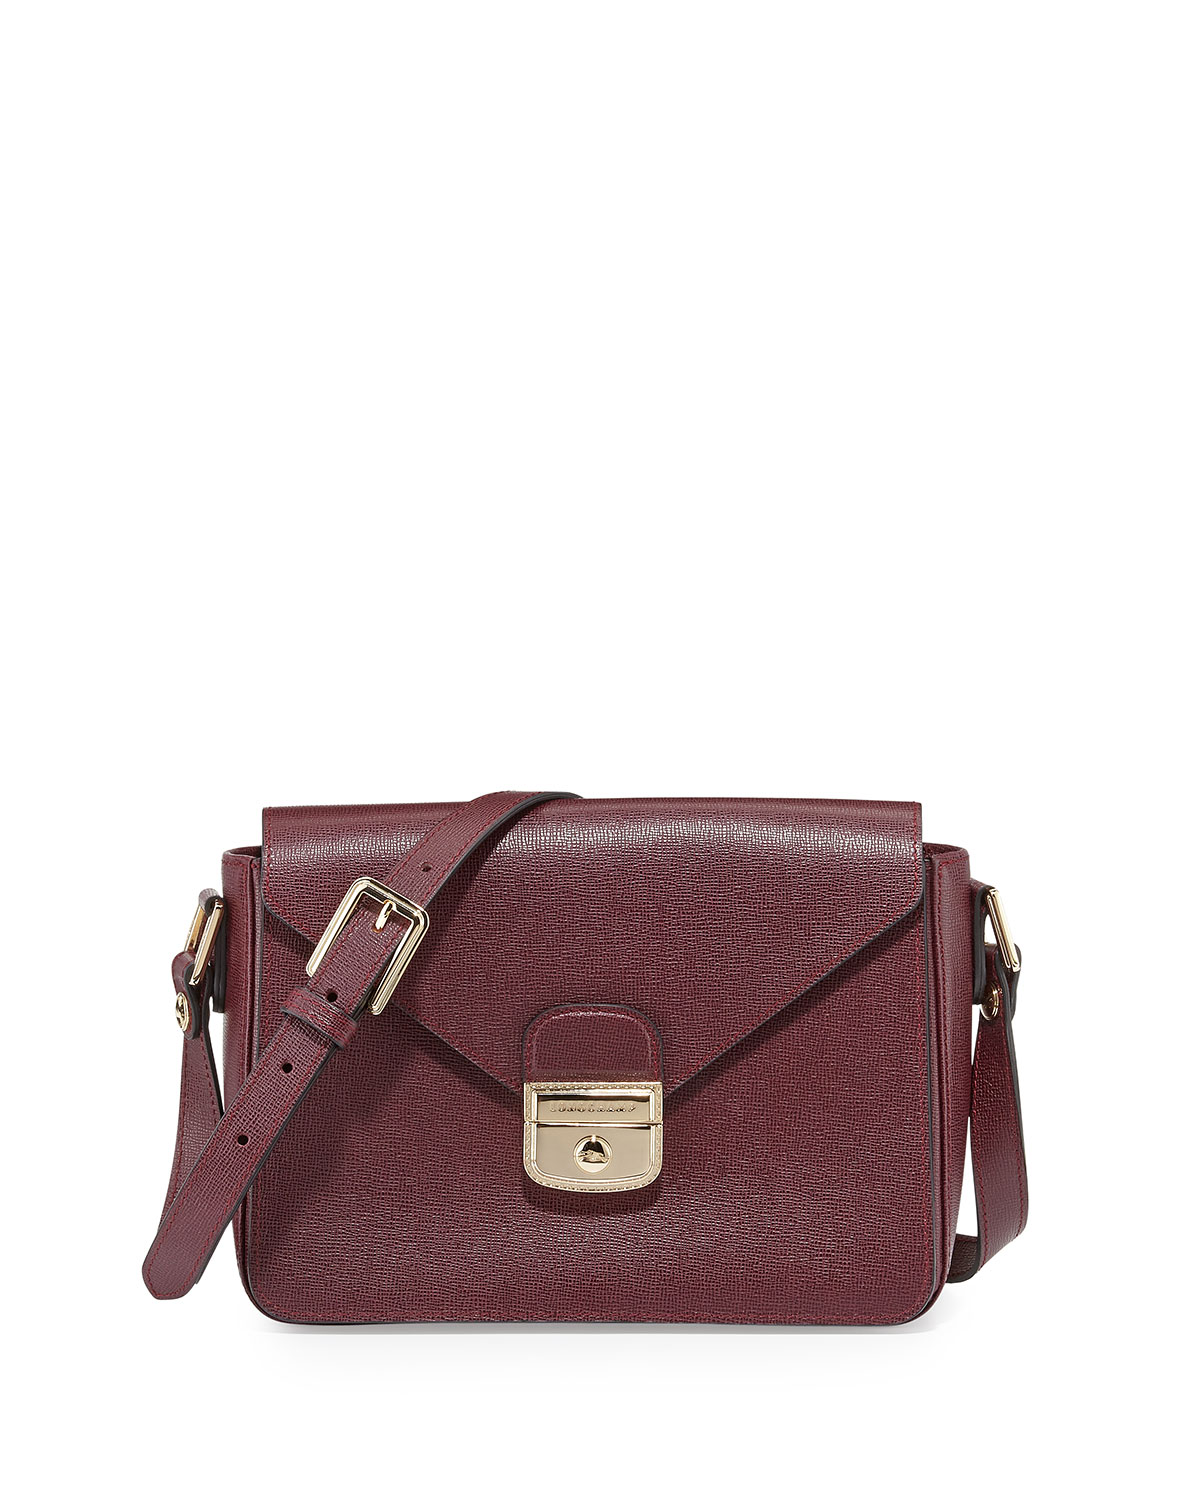 8cd876a1ca5 Longchamp Le Pliage Heritage Large Crossbody Bag, Burgundy   Neiman ...